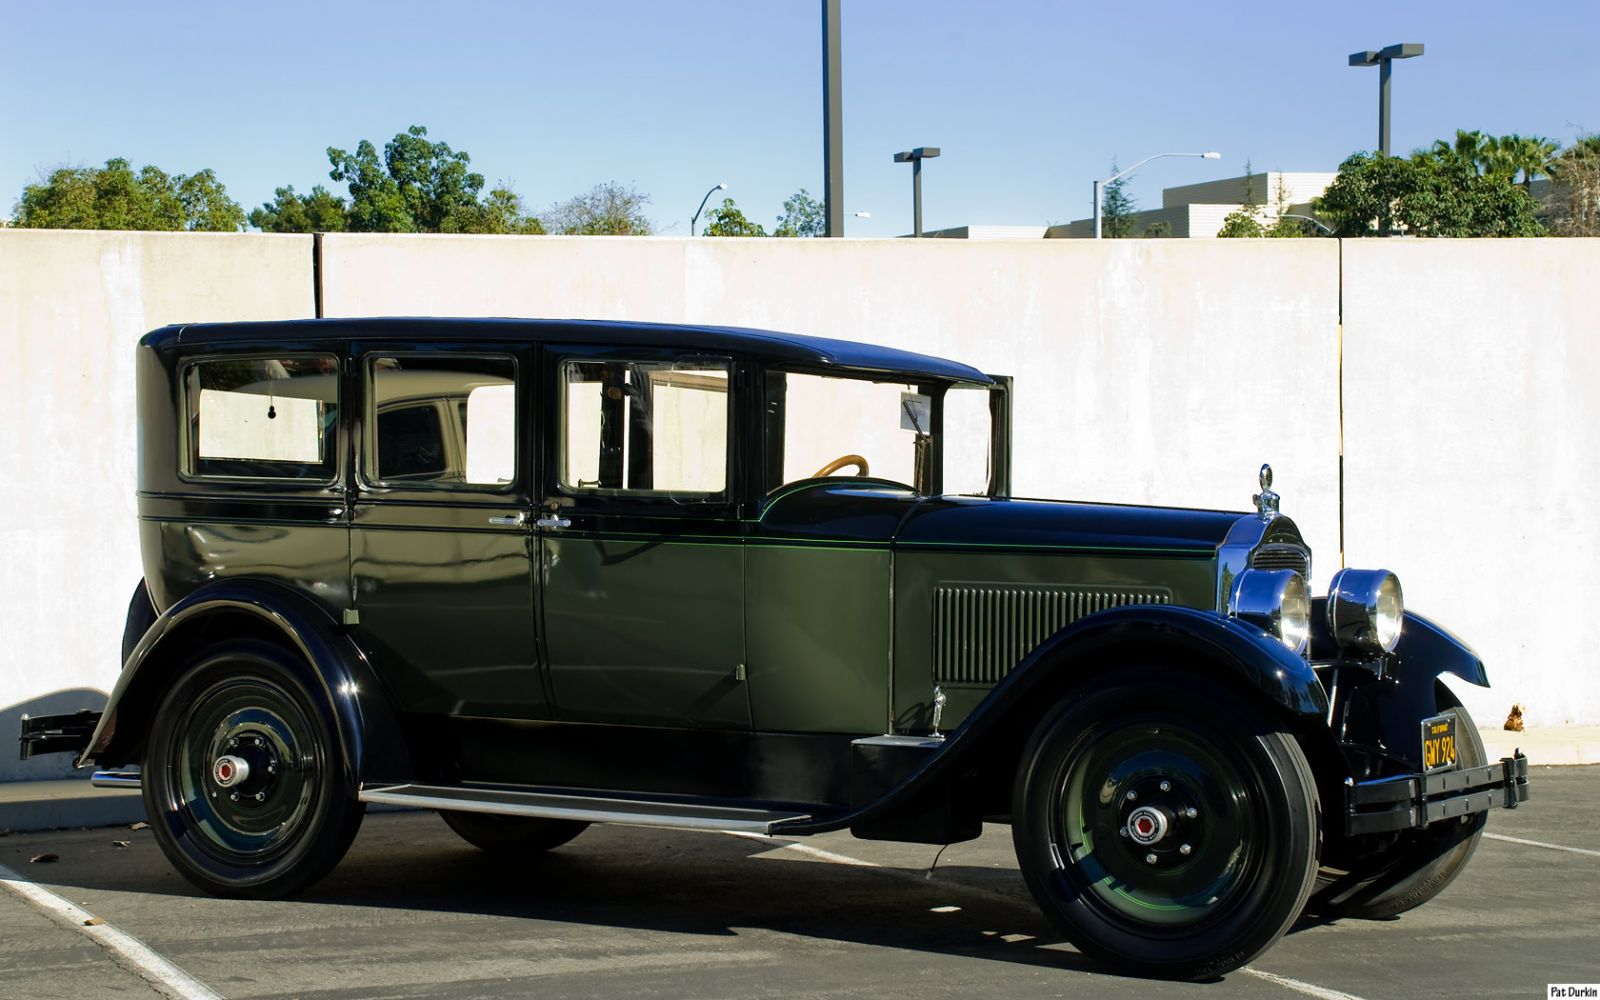 1927 Packard 6-Cylinder Touring Sedan - fvr 1a